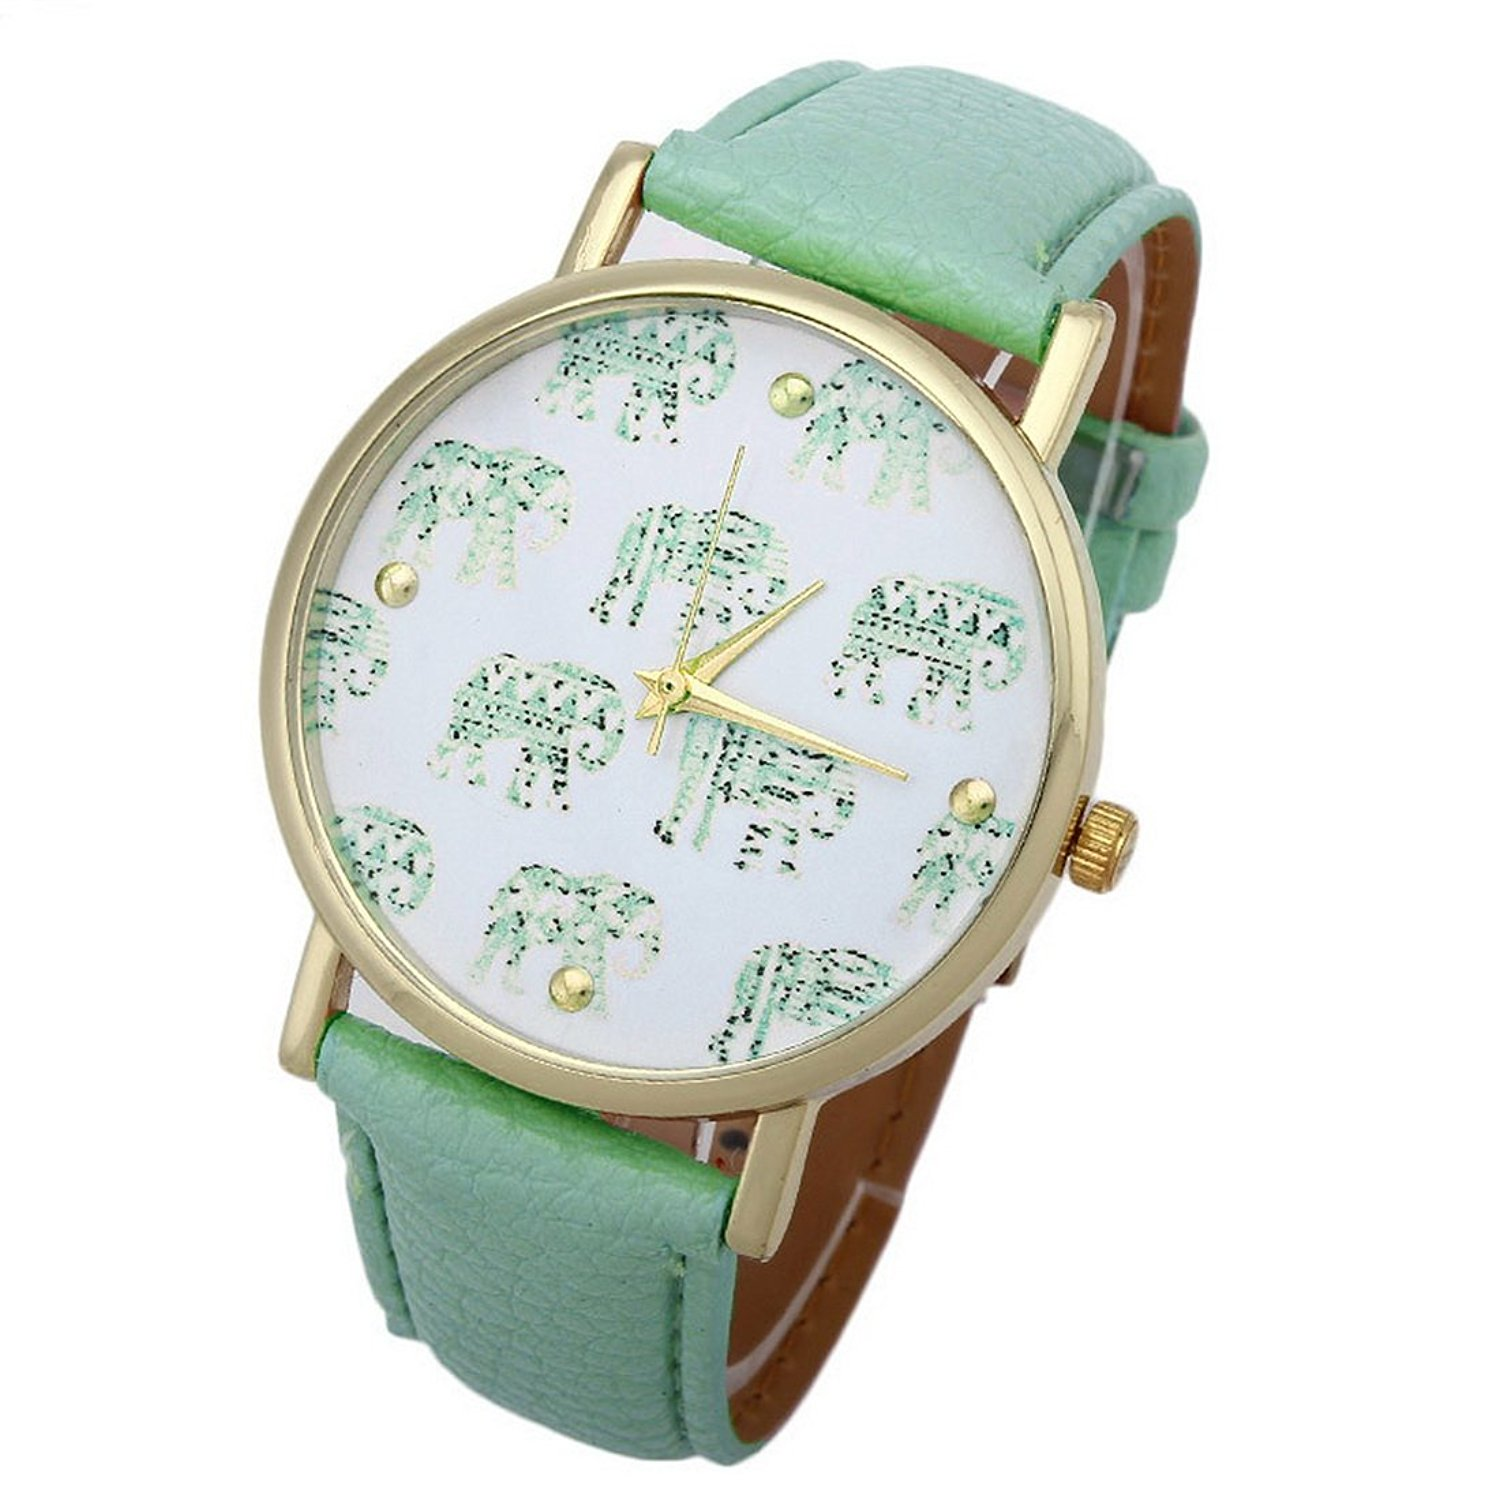 Reloj mujer elefante turquesa